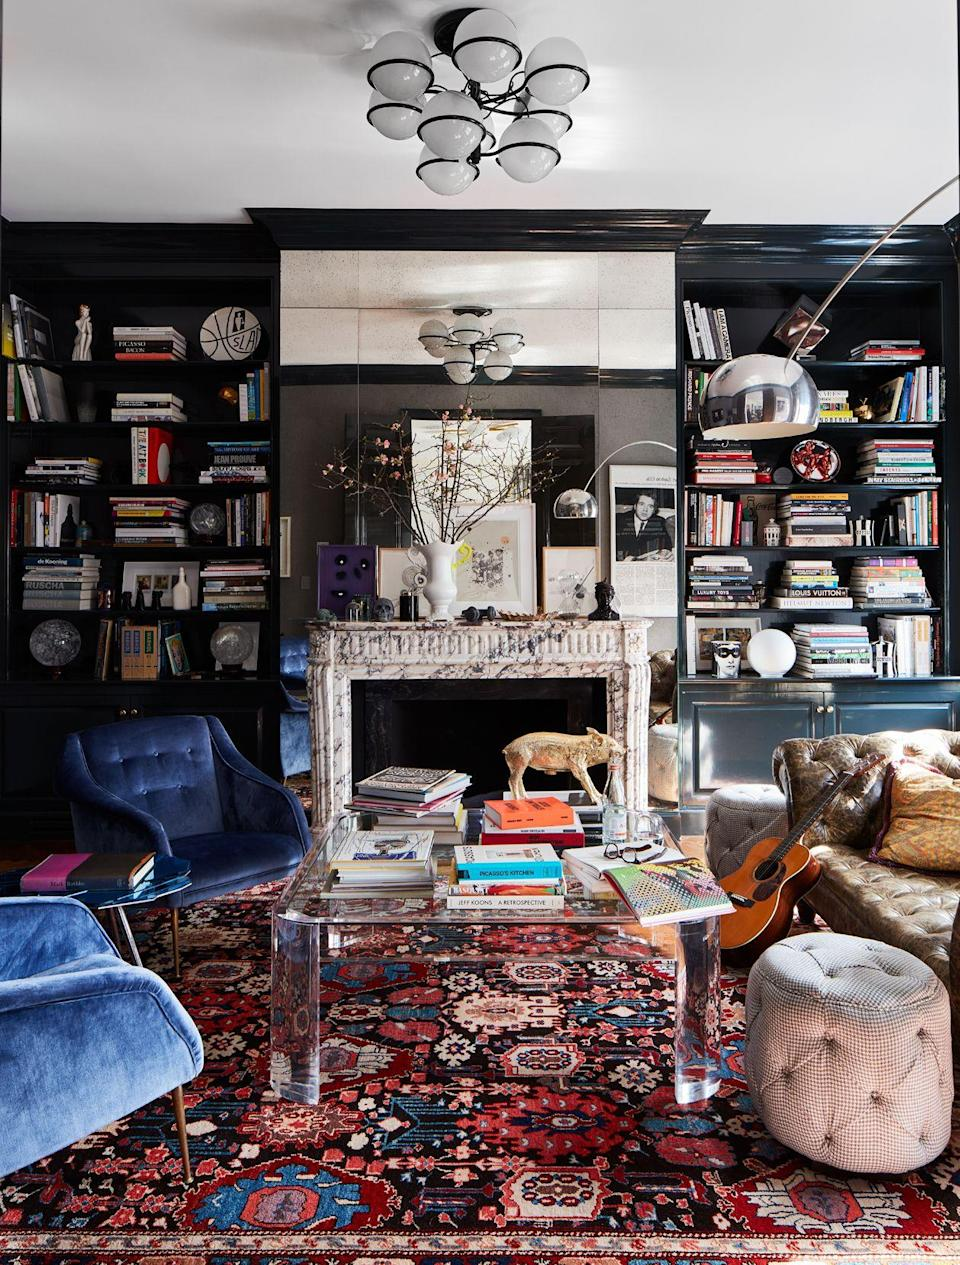 "<p>If you're a design lover, chances are your shelves always have room for another book (and if you're like many of the <em>House Beautiful</em> editors, by now they're spilling from your shelves to coffee tables, floor space, nightstands, and beyond—much like in the <a href=""https://www.housebeautiful.com/design-inspiration/house-tours/a27359529/fawn-galli-new-york-apartment/"" rel=""nofollow noopener"" target=""_blank"" data-ylk=""slk:New York apartment by Fawn Galli above"" class=""link rapid-noclick-resp"">New York apartment by Fawn Galli above</a>). Lucky for us, each season brings a fresh set of inspirational tomes from designers, stylists, and historians, giving us eye candy—and design advice—aplenty. Read on for the ones we're buying now. <strong>And be sure to check back regularly:</strong> We'll be updating this list with our latest favorites every month. </p>"